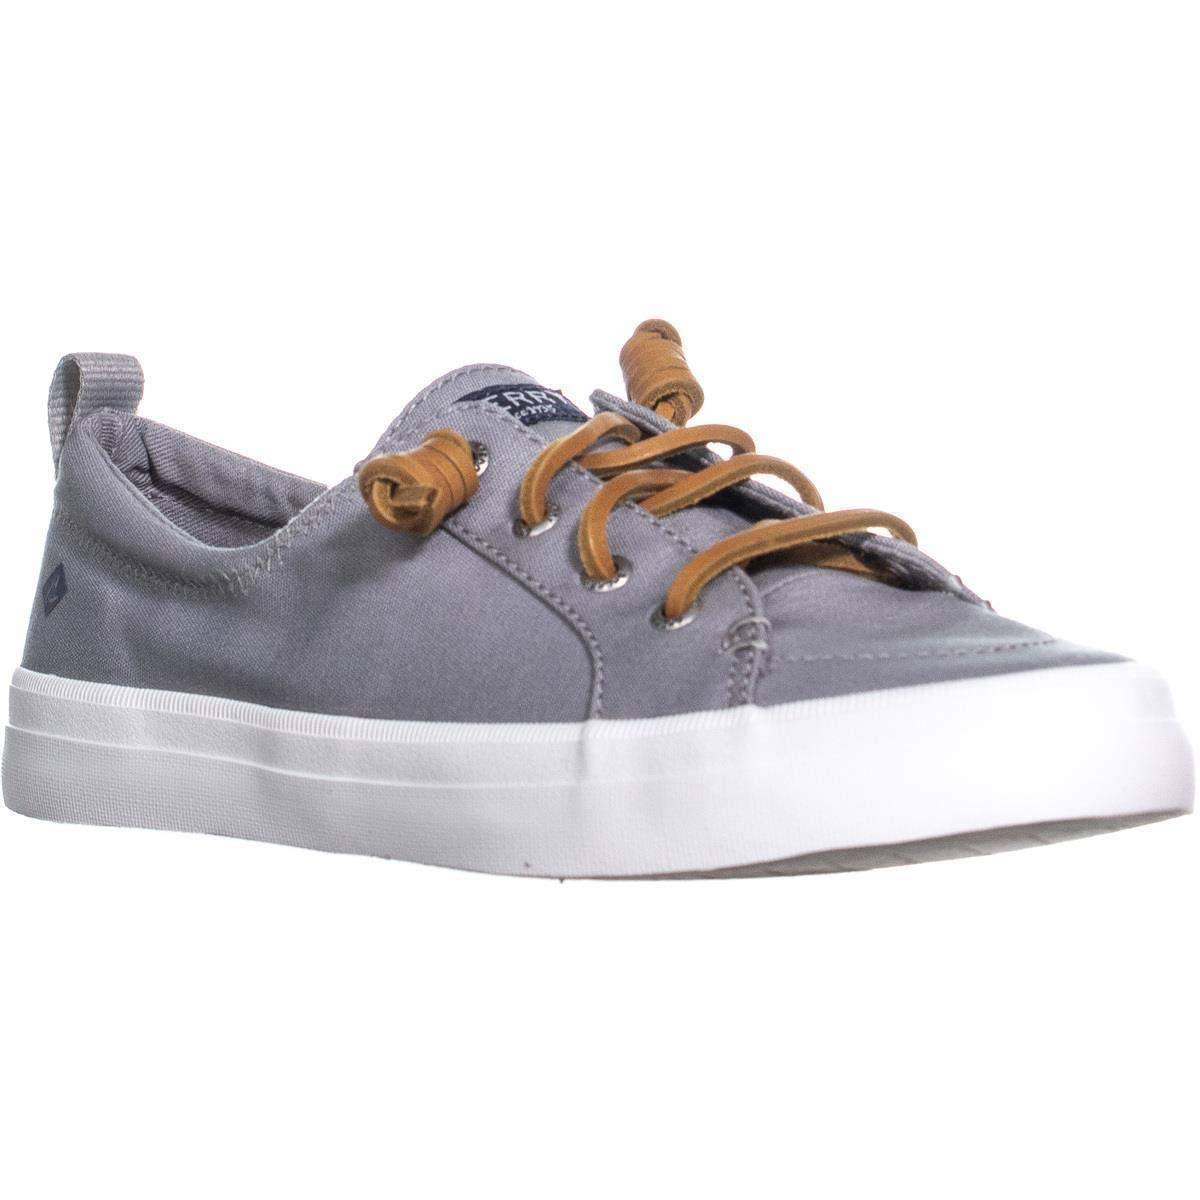 SPERRY Women's Crest Vibe Canvas